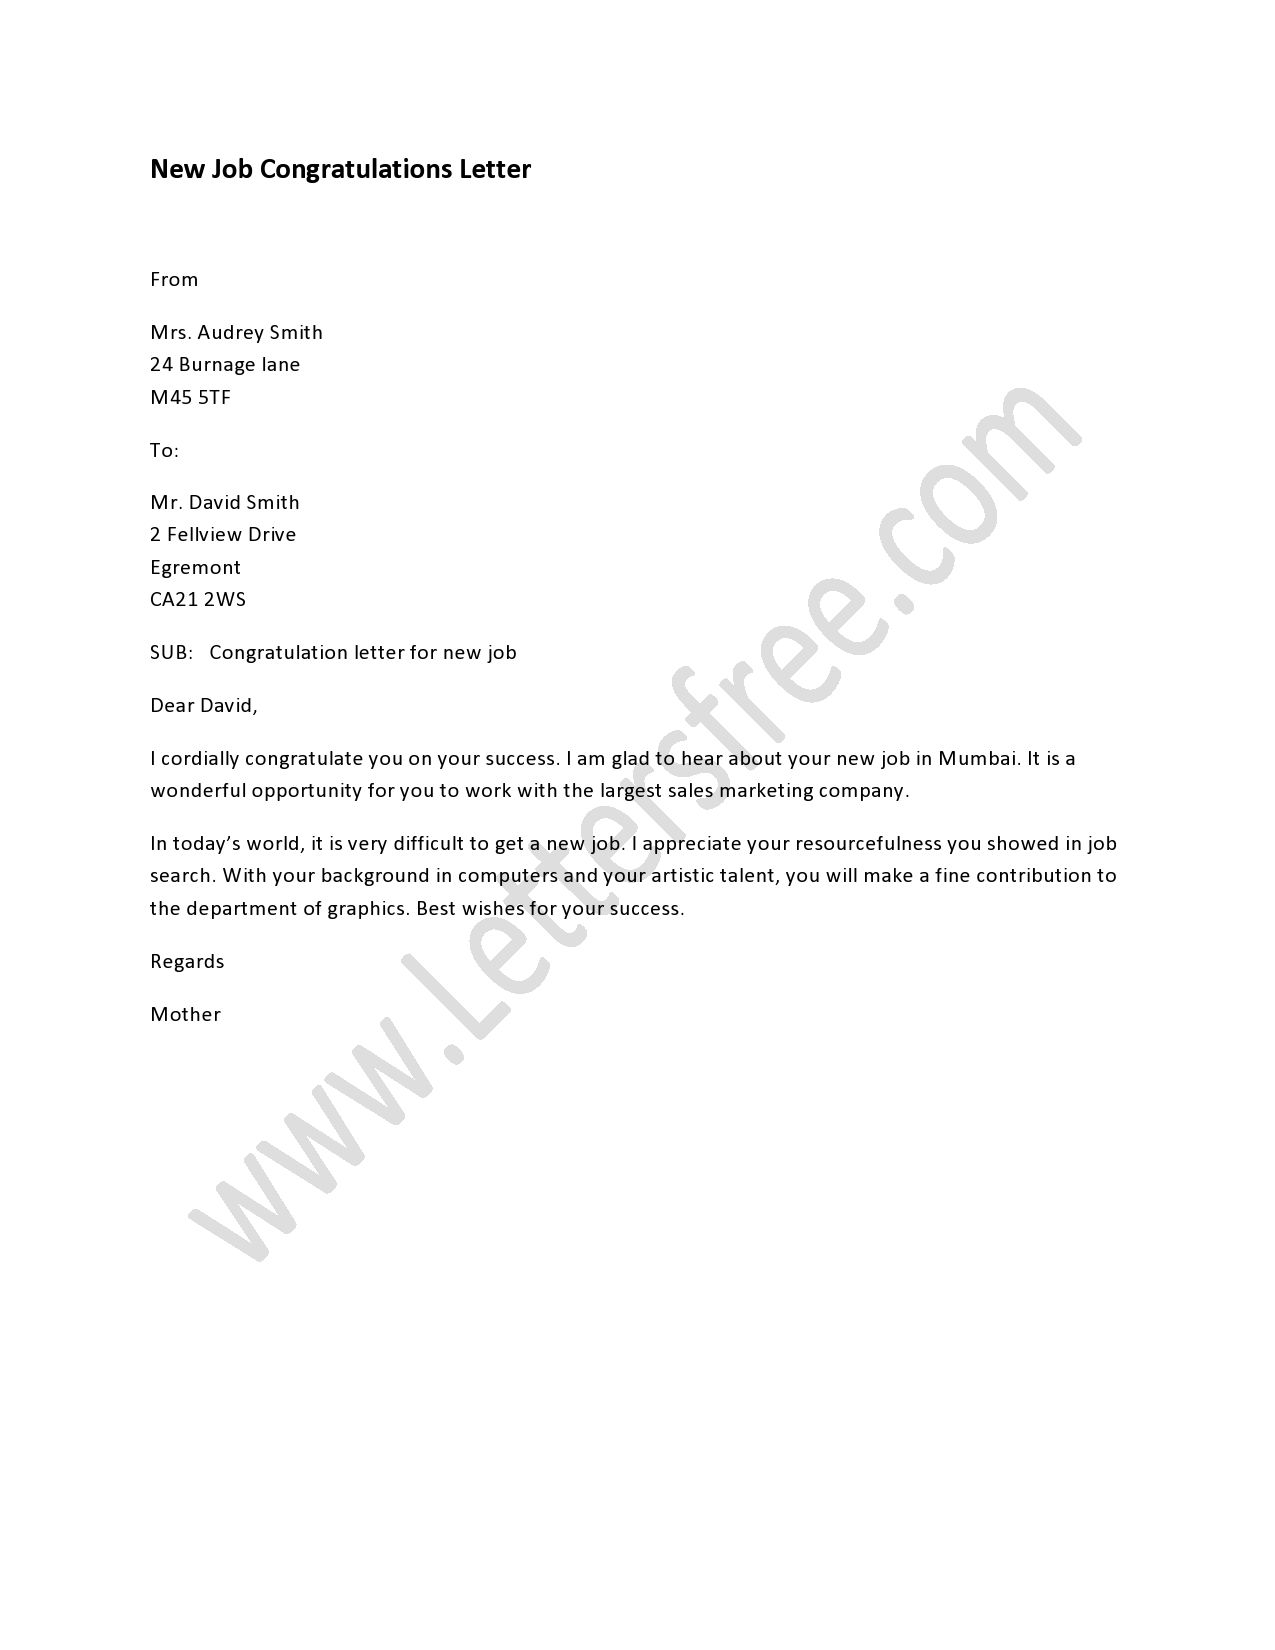 New Job Congratulations Letter | Sample Congratulations Letters